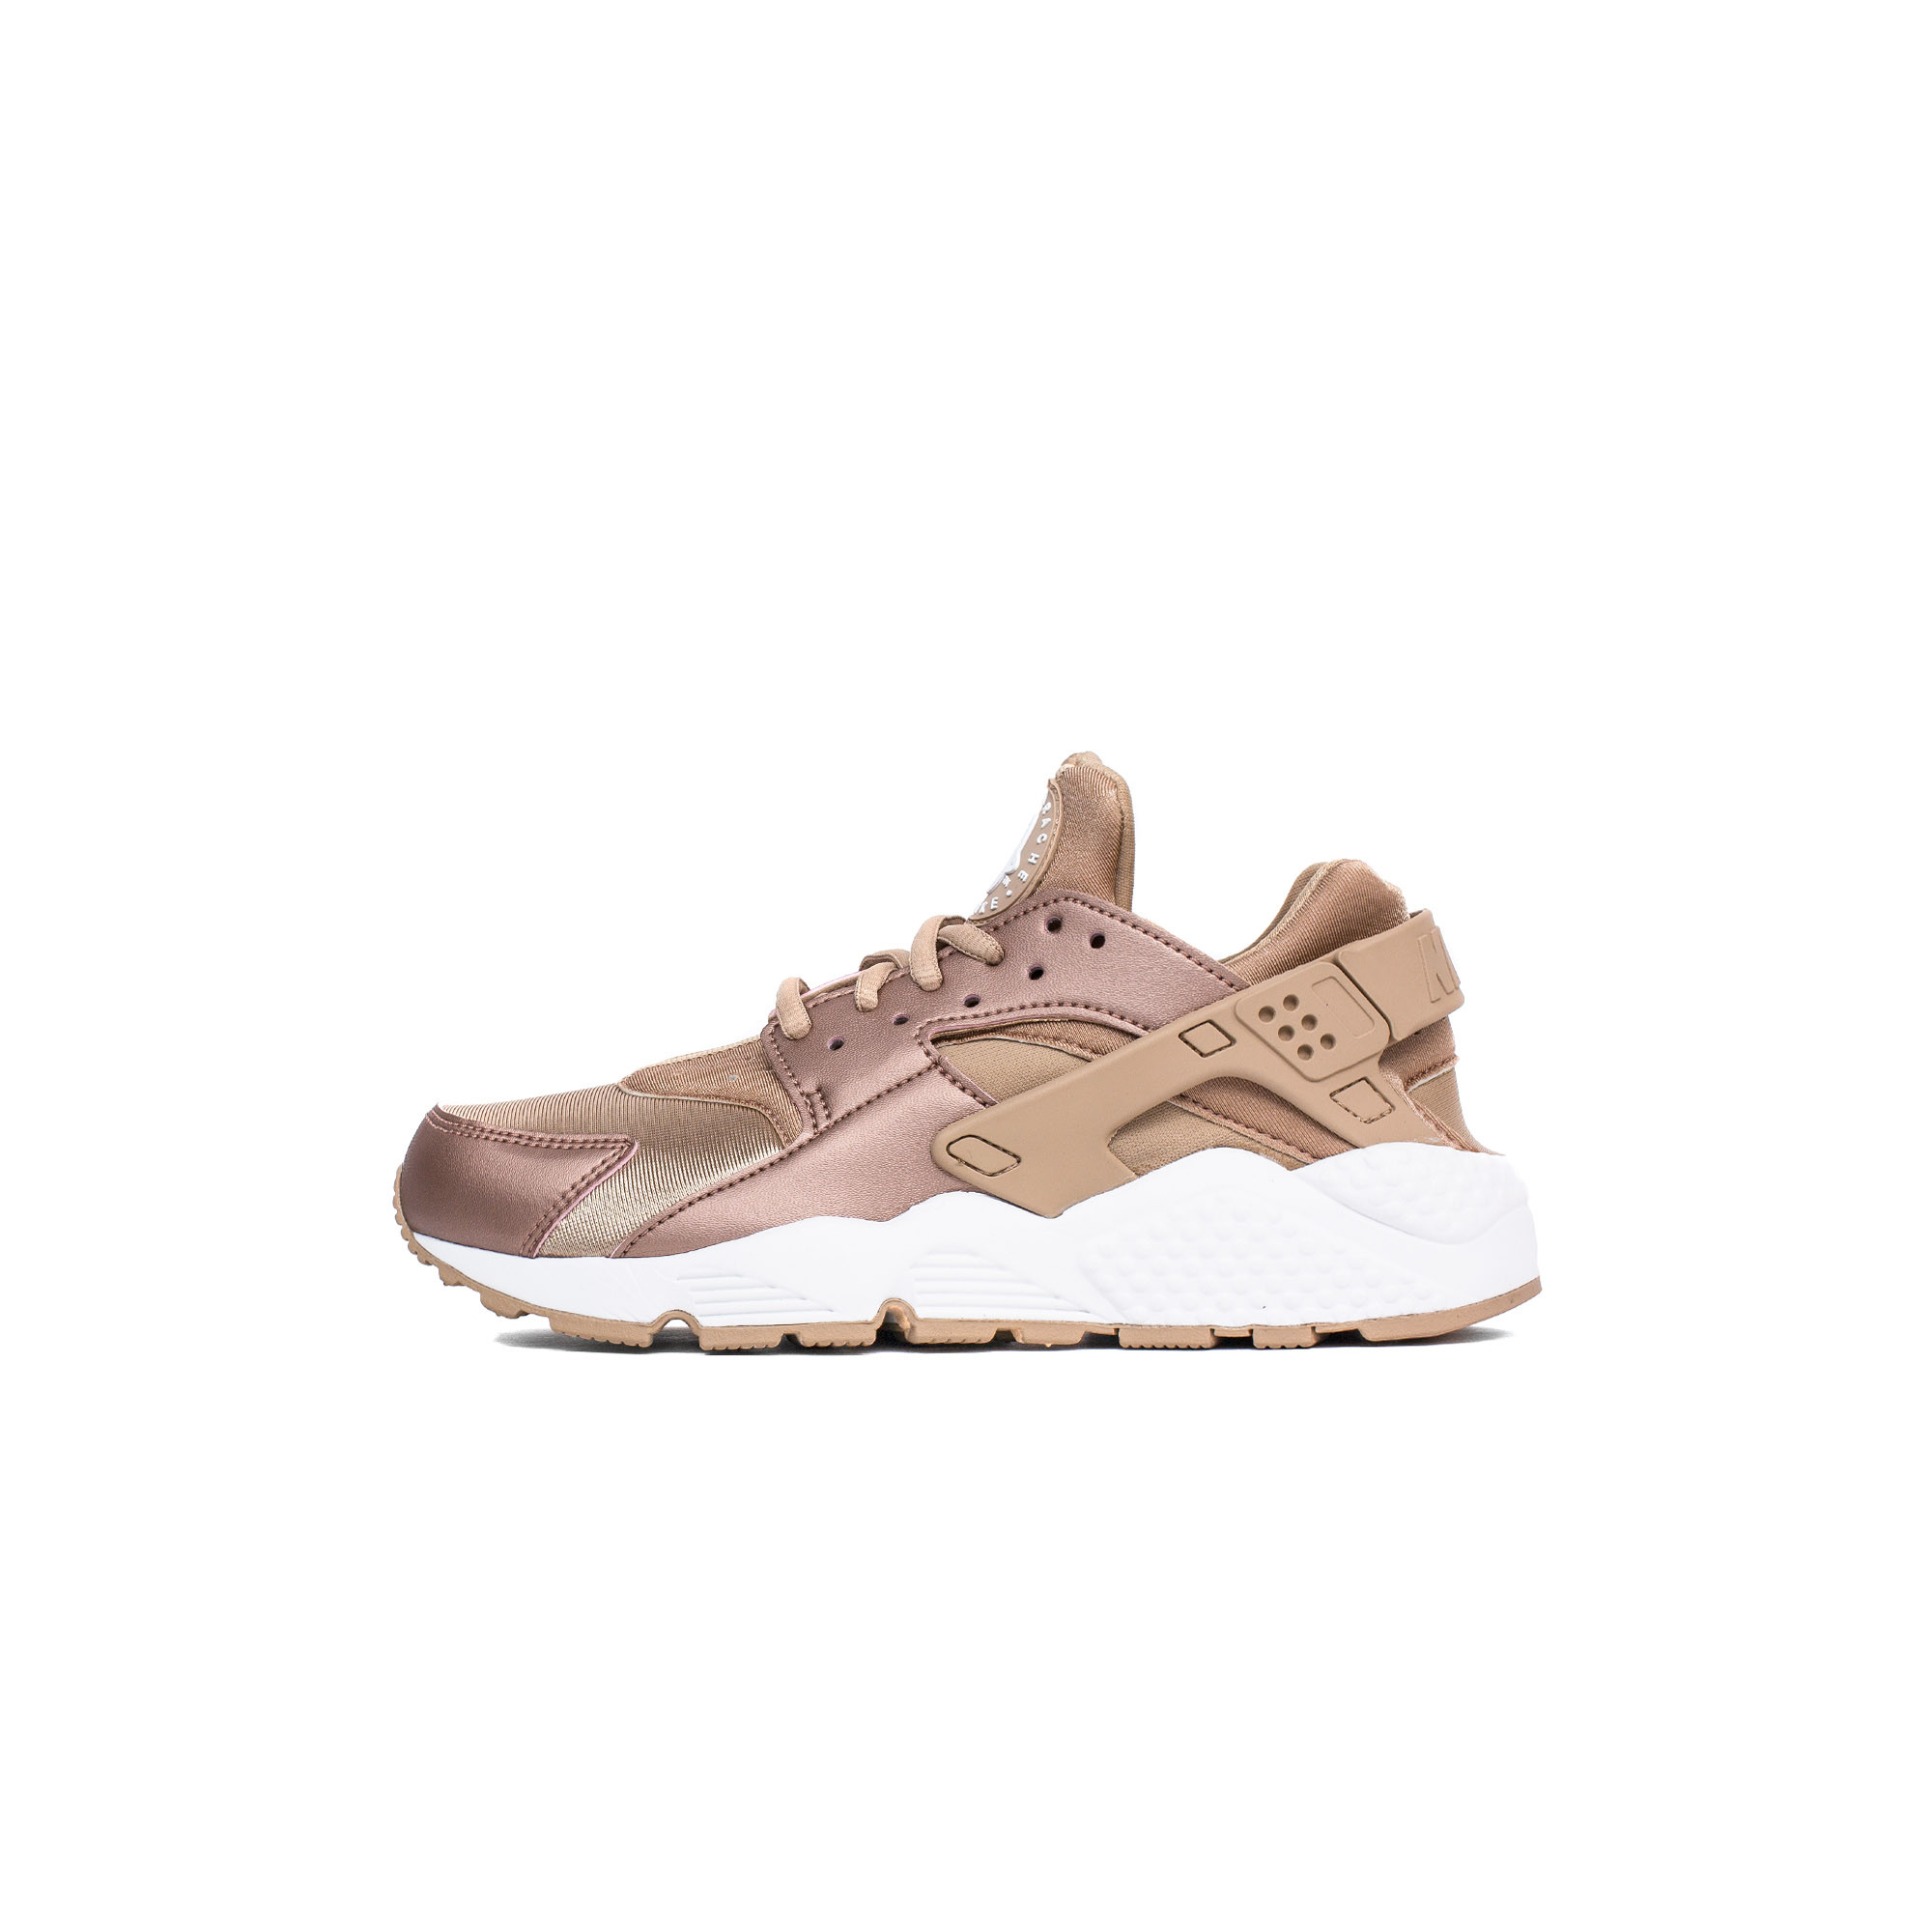 be3f91b8168b ... sale wish list nike womens air huarache run se metallic red bronze  fb214 899d0